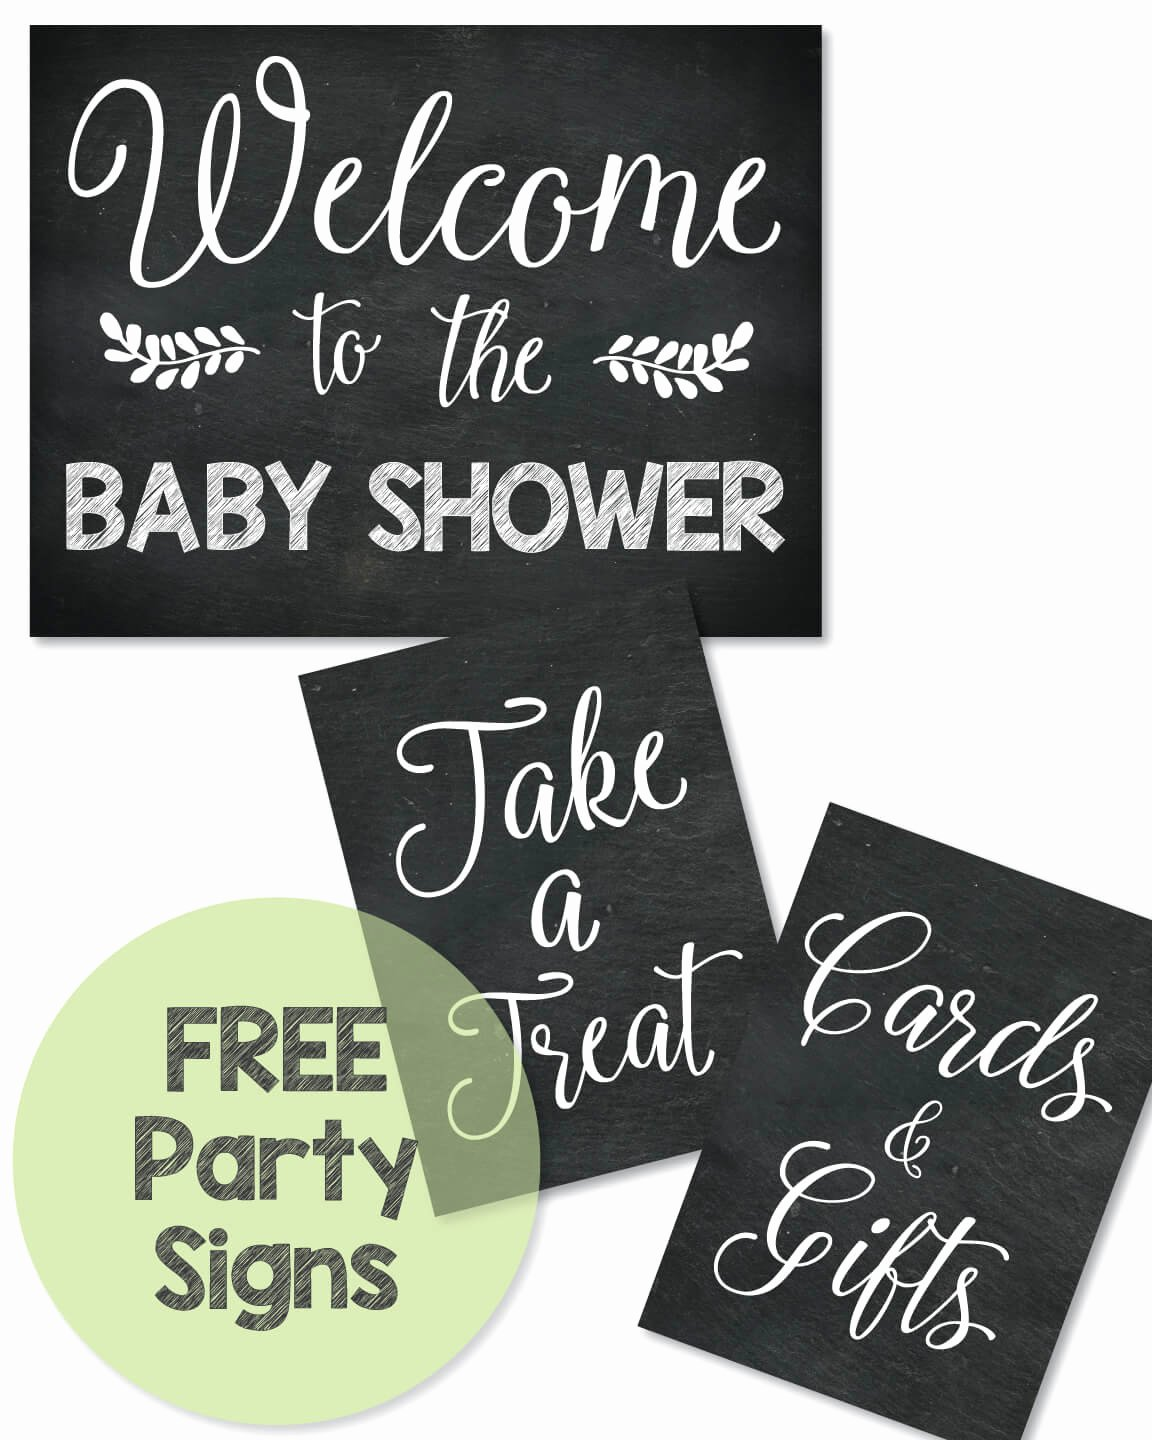 Baby Shower Banner Printable Elegant Free Baby Stuff Freebies for New & Expecting Moms and Babies